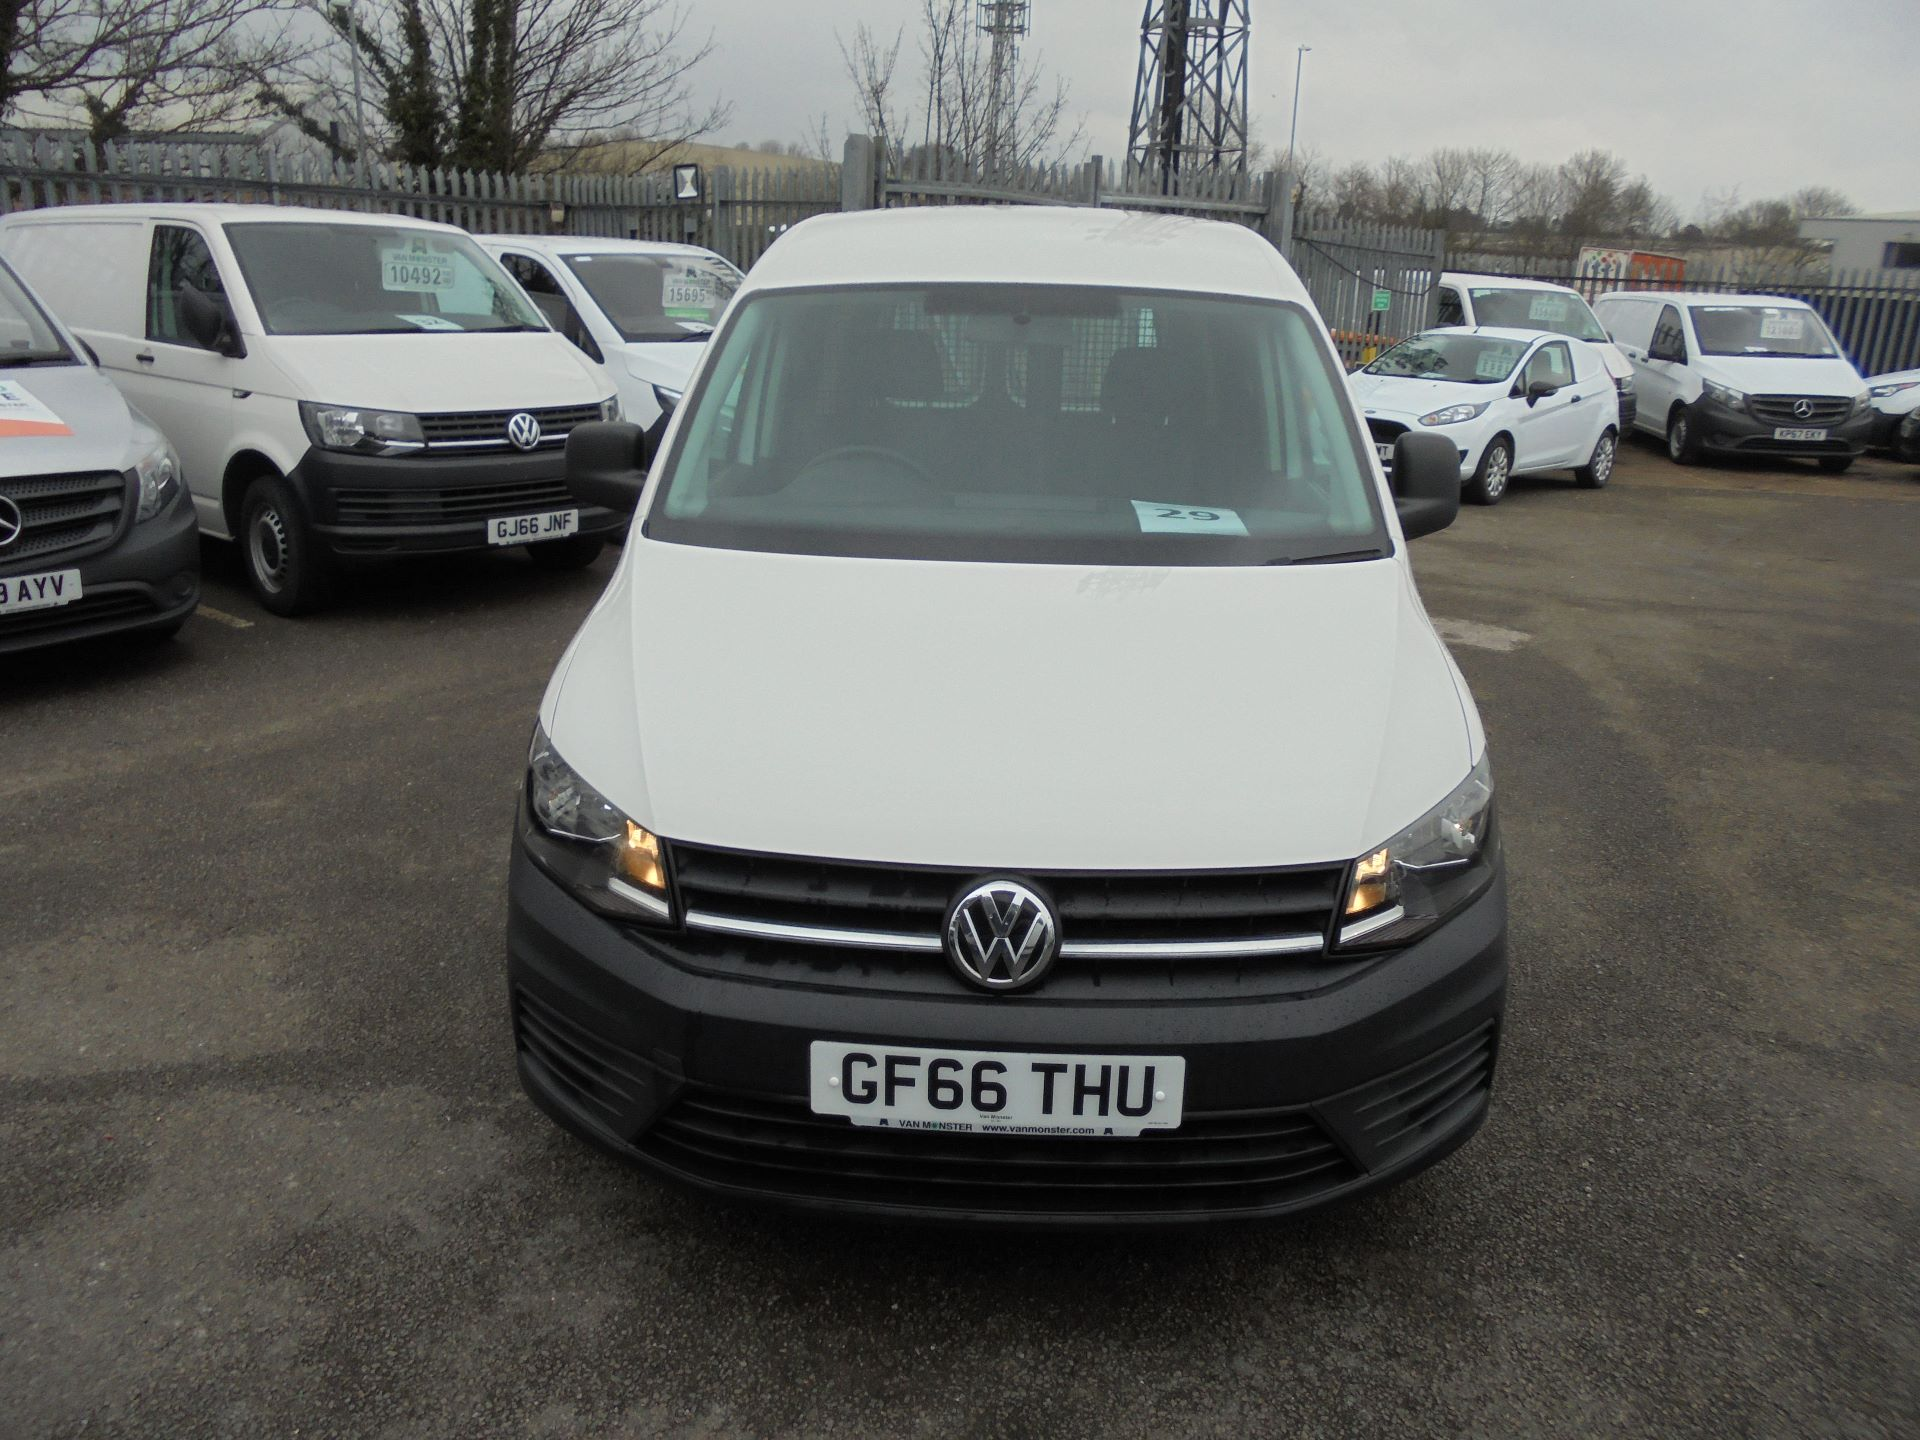 2016 Volkswagen Caddy 1.6 Tdi 102Ps Van (GF66THU) Thumbnail 3